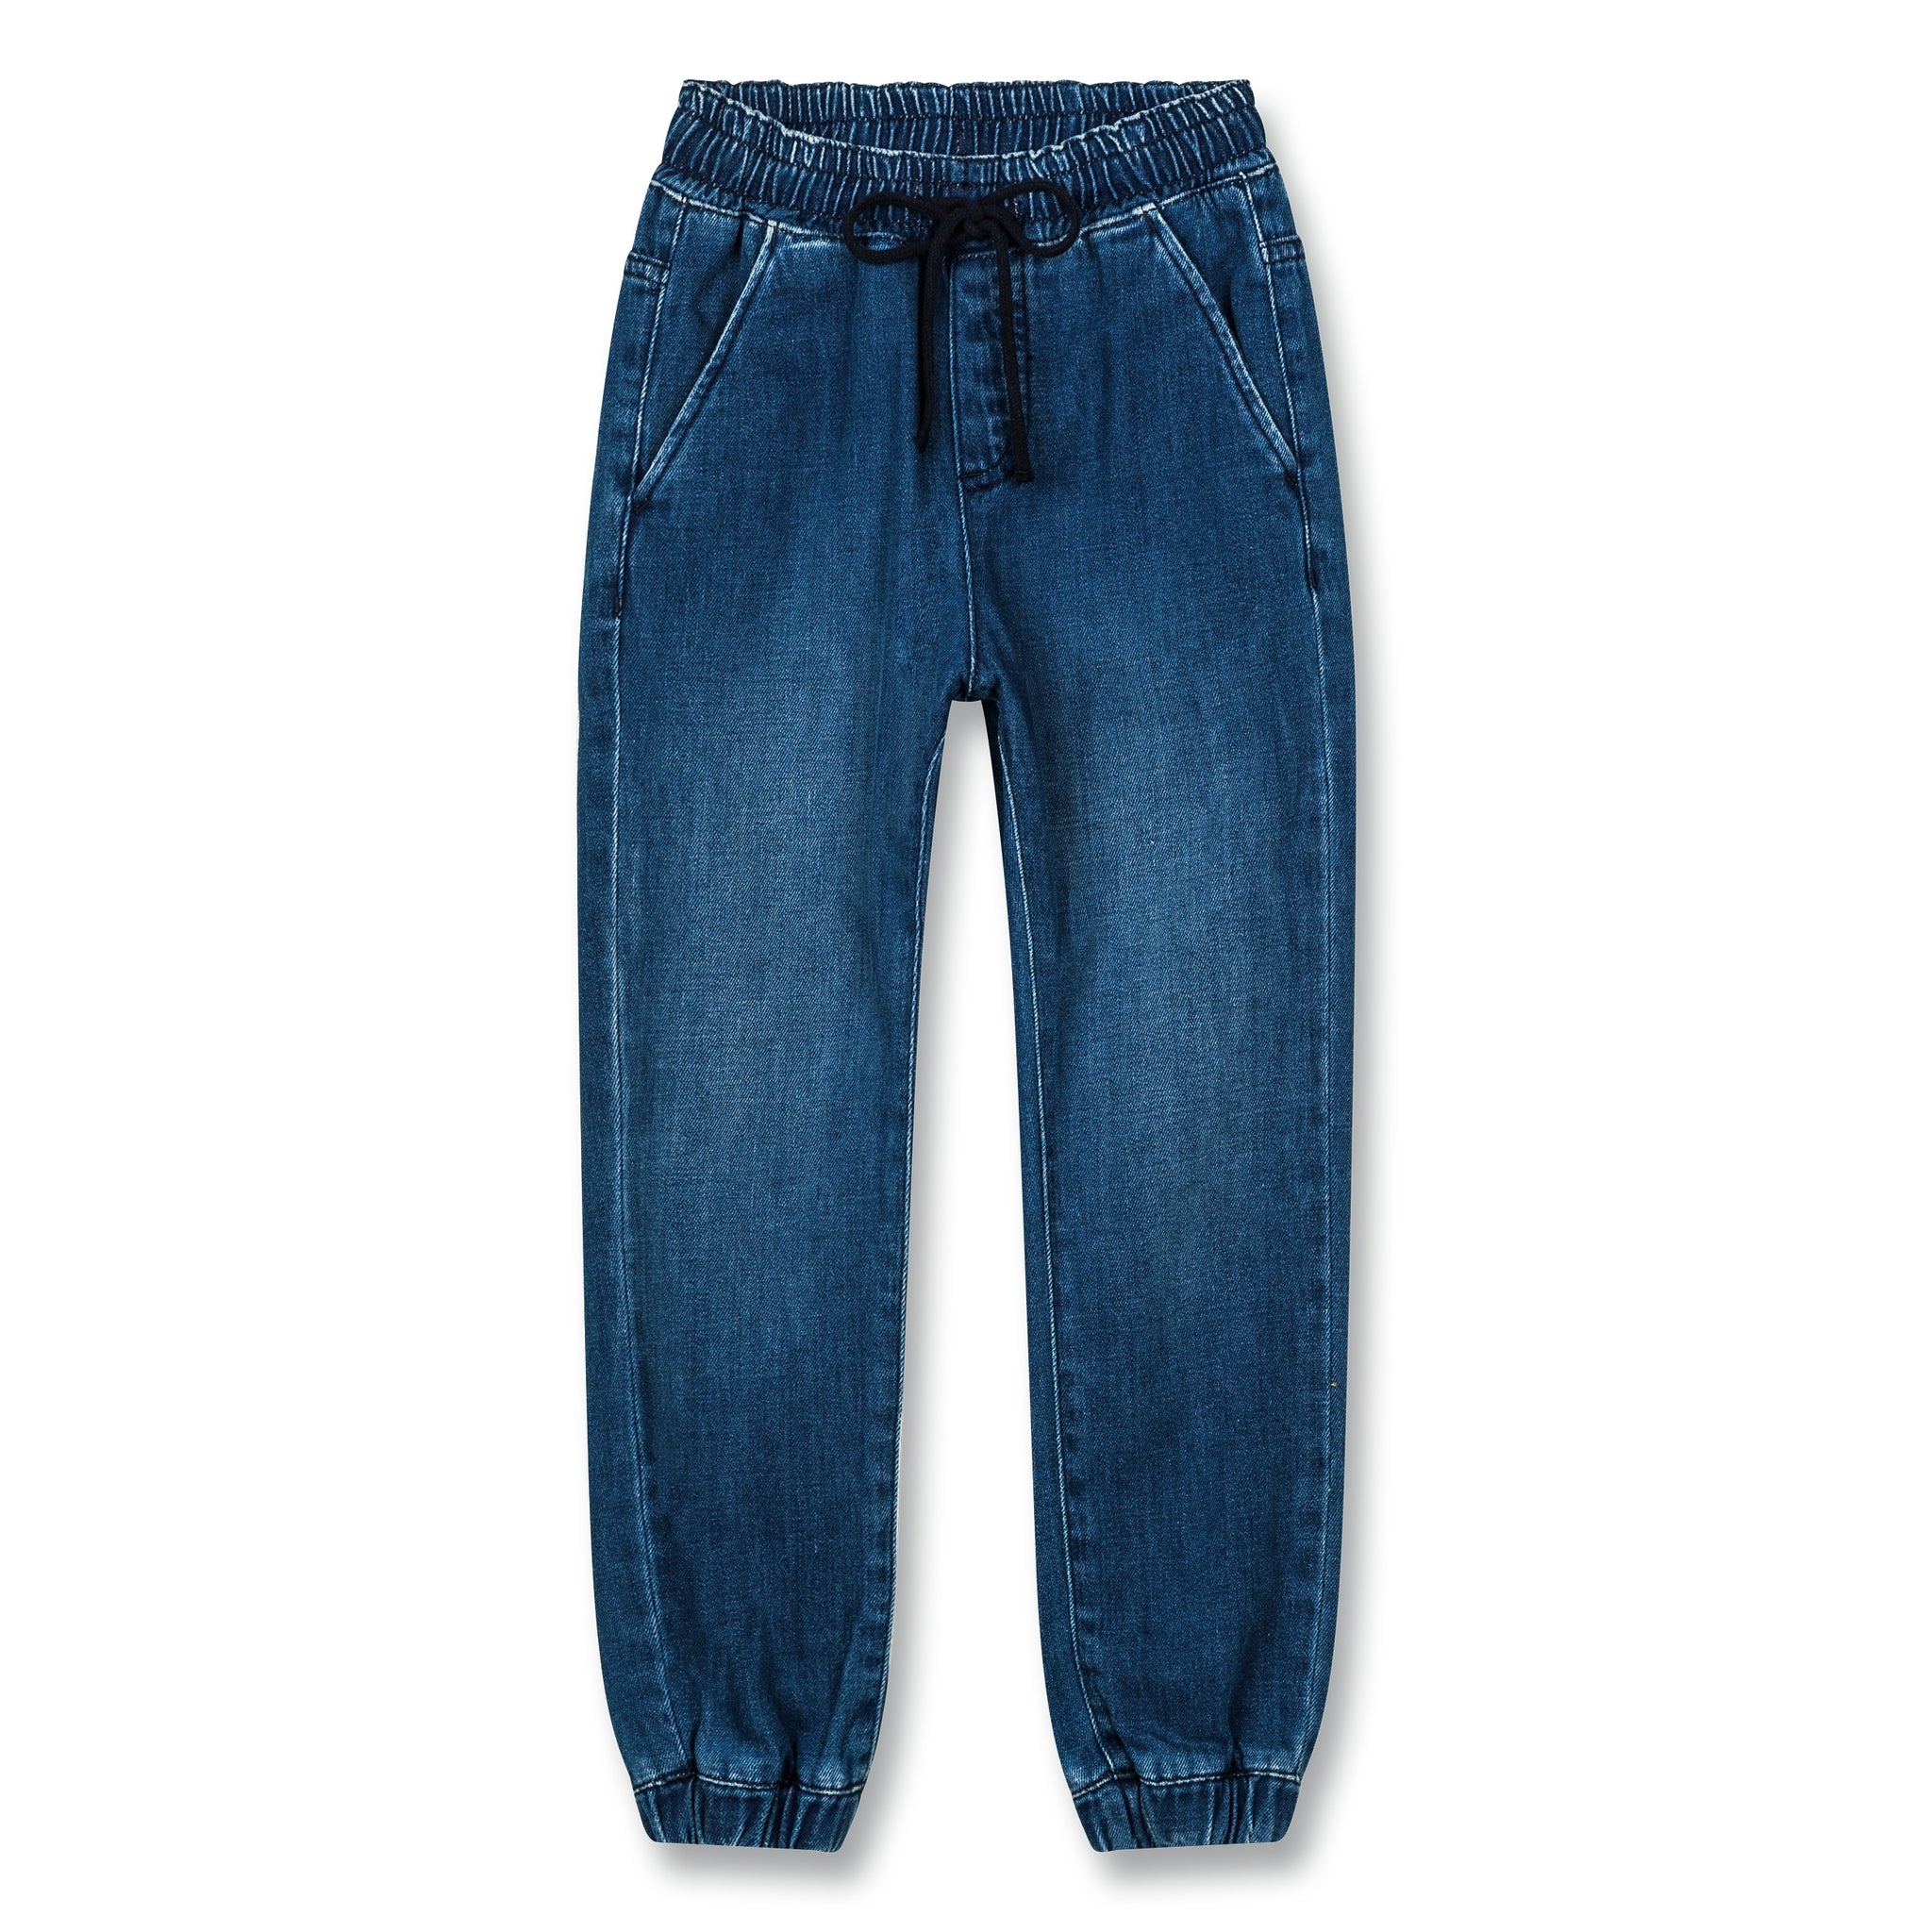 LONGBEACH Blue Denim - Woven Jogging Pants 1